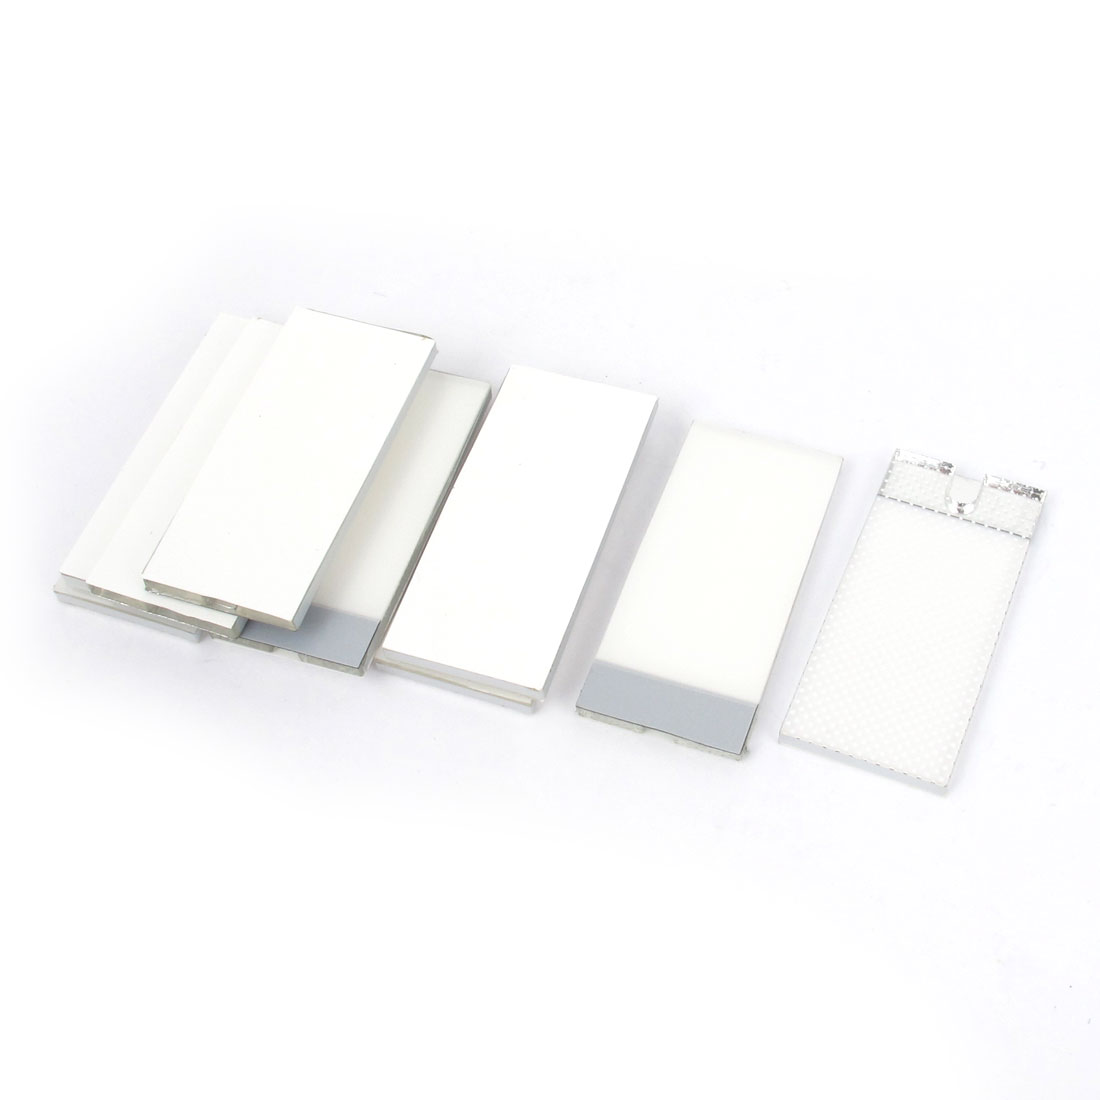 10 Pcs 40mm x 18mm x 2mm Bottom Rectangle LED Backlight Panel for Lcd Display